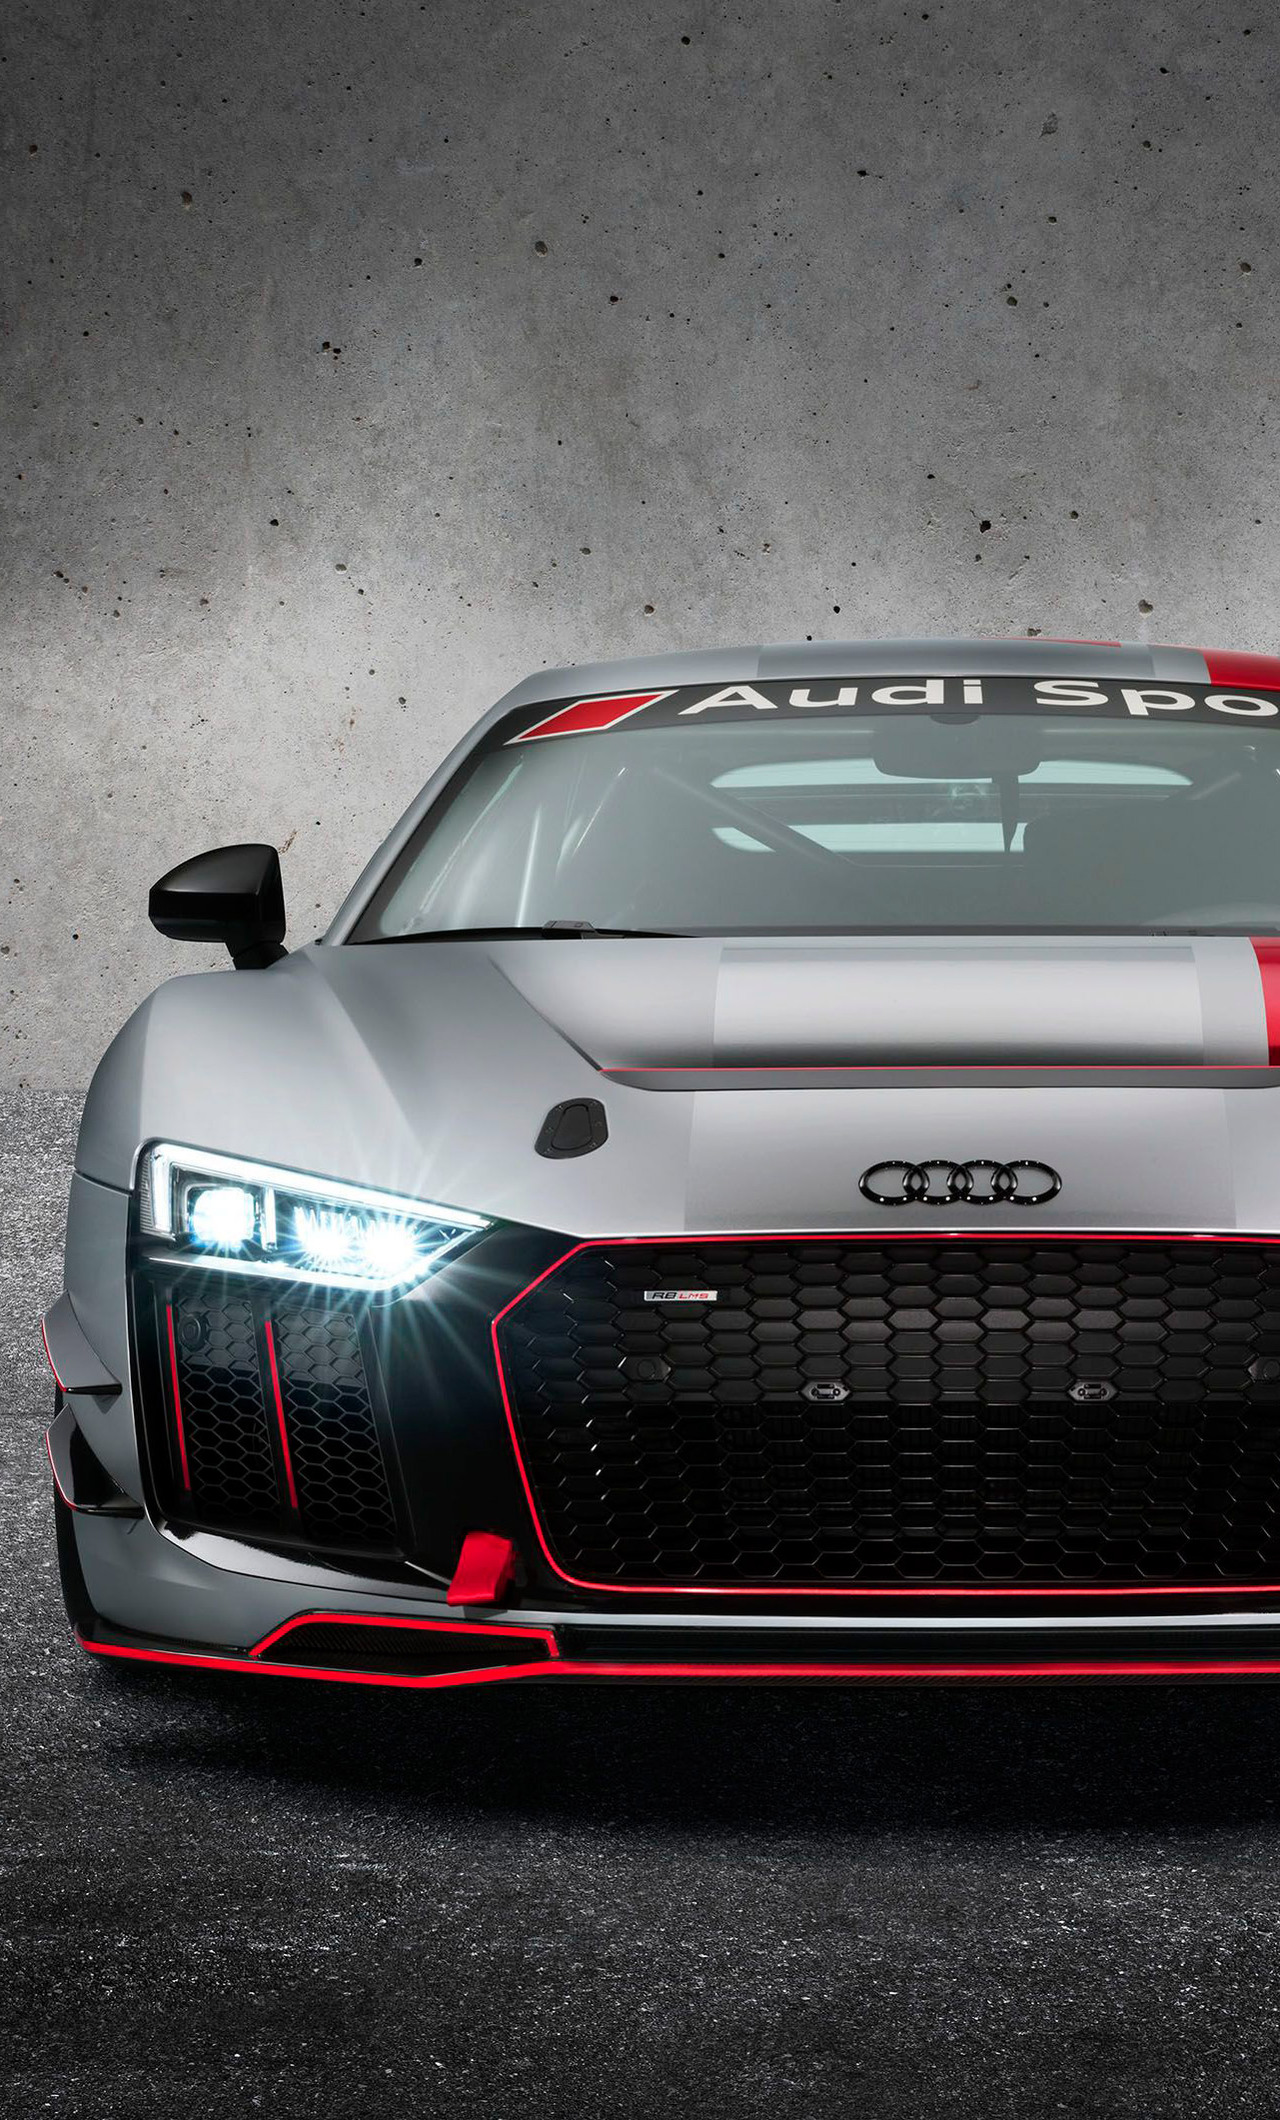 1280x2120 Audi R8 Lms Gt4 Iphone 6 Hd 4k Wallpapers Images